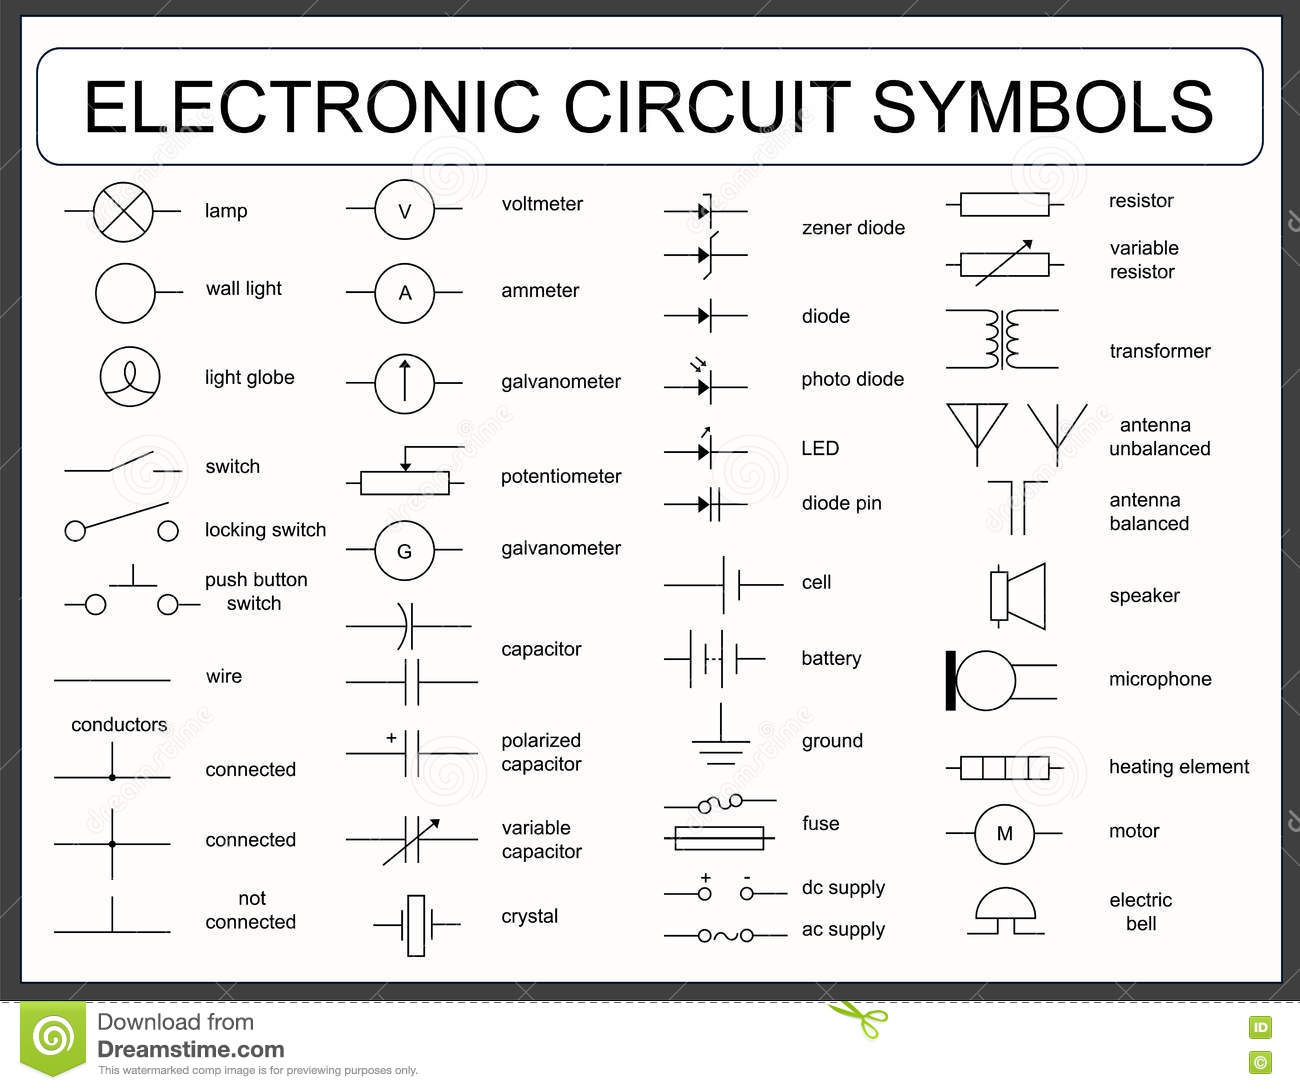 all circuit symbols enthusiast wiring diagrams u2022 rh rasalibre co symbols of hydraulic circuits symbols of electricity circuits